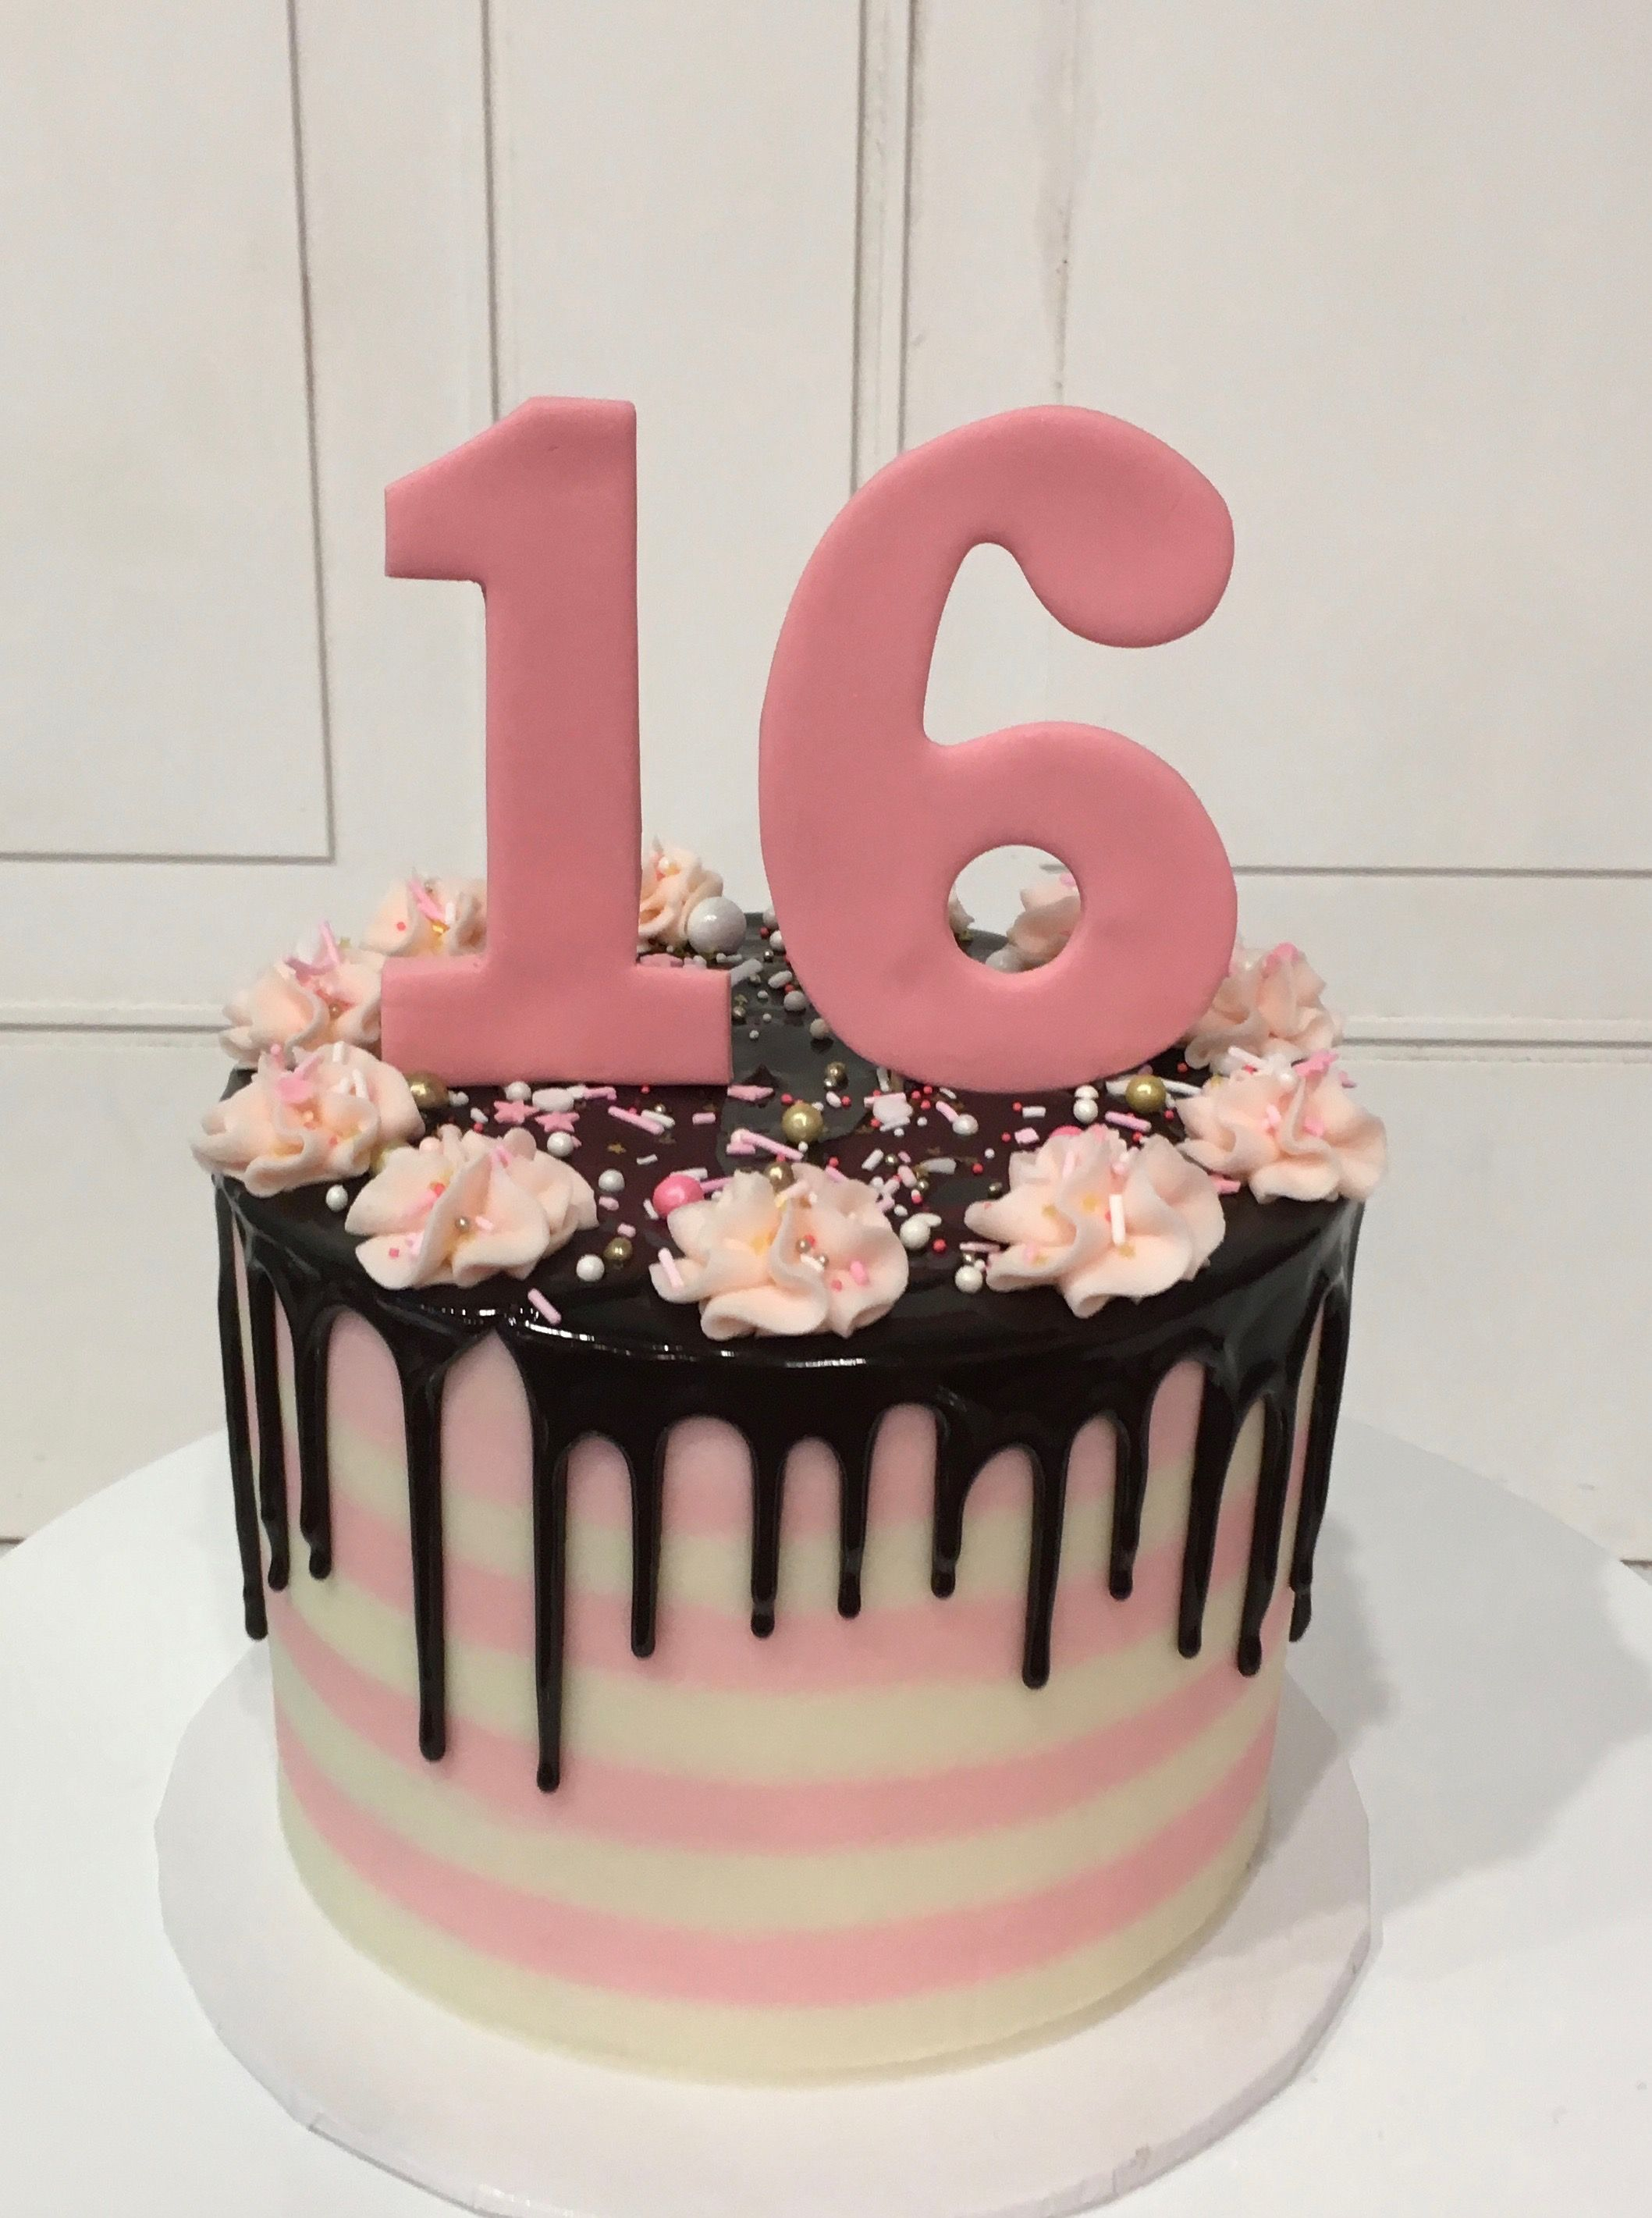 Pink and White Chocolate Ganache Drip Cake for 16th Birthday by 3 Sweet Girls Cakery! #sweet16cakes